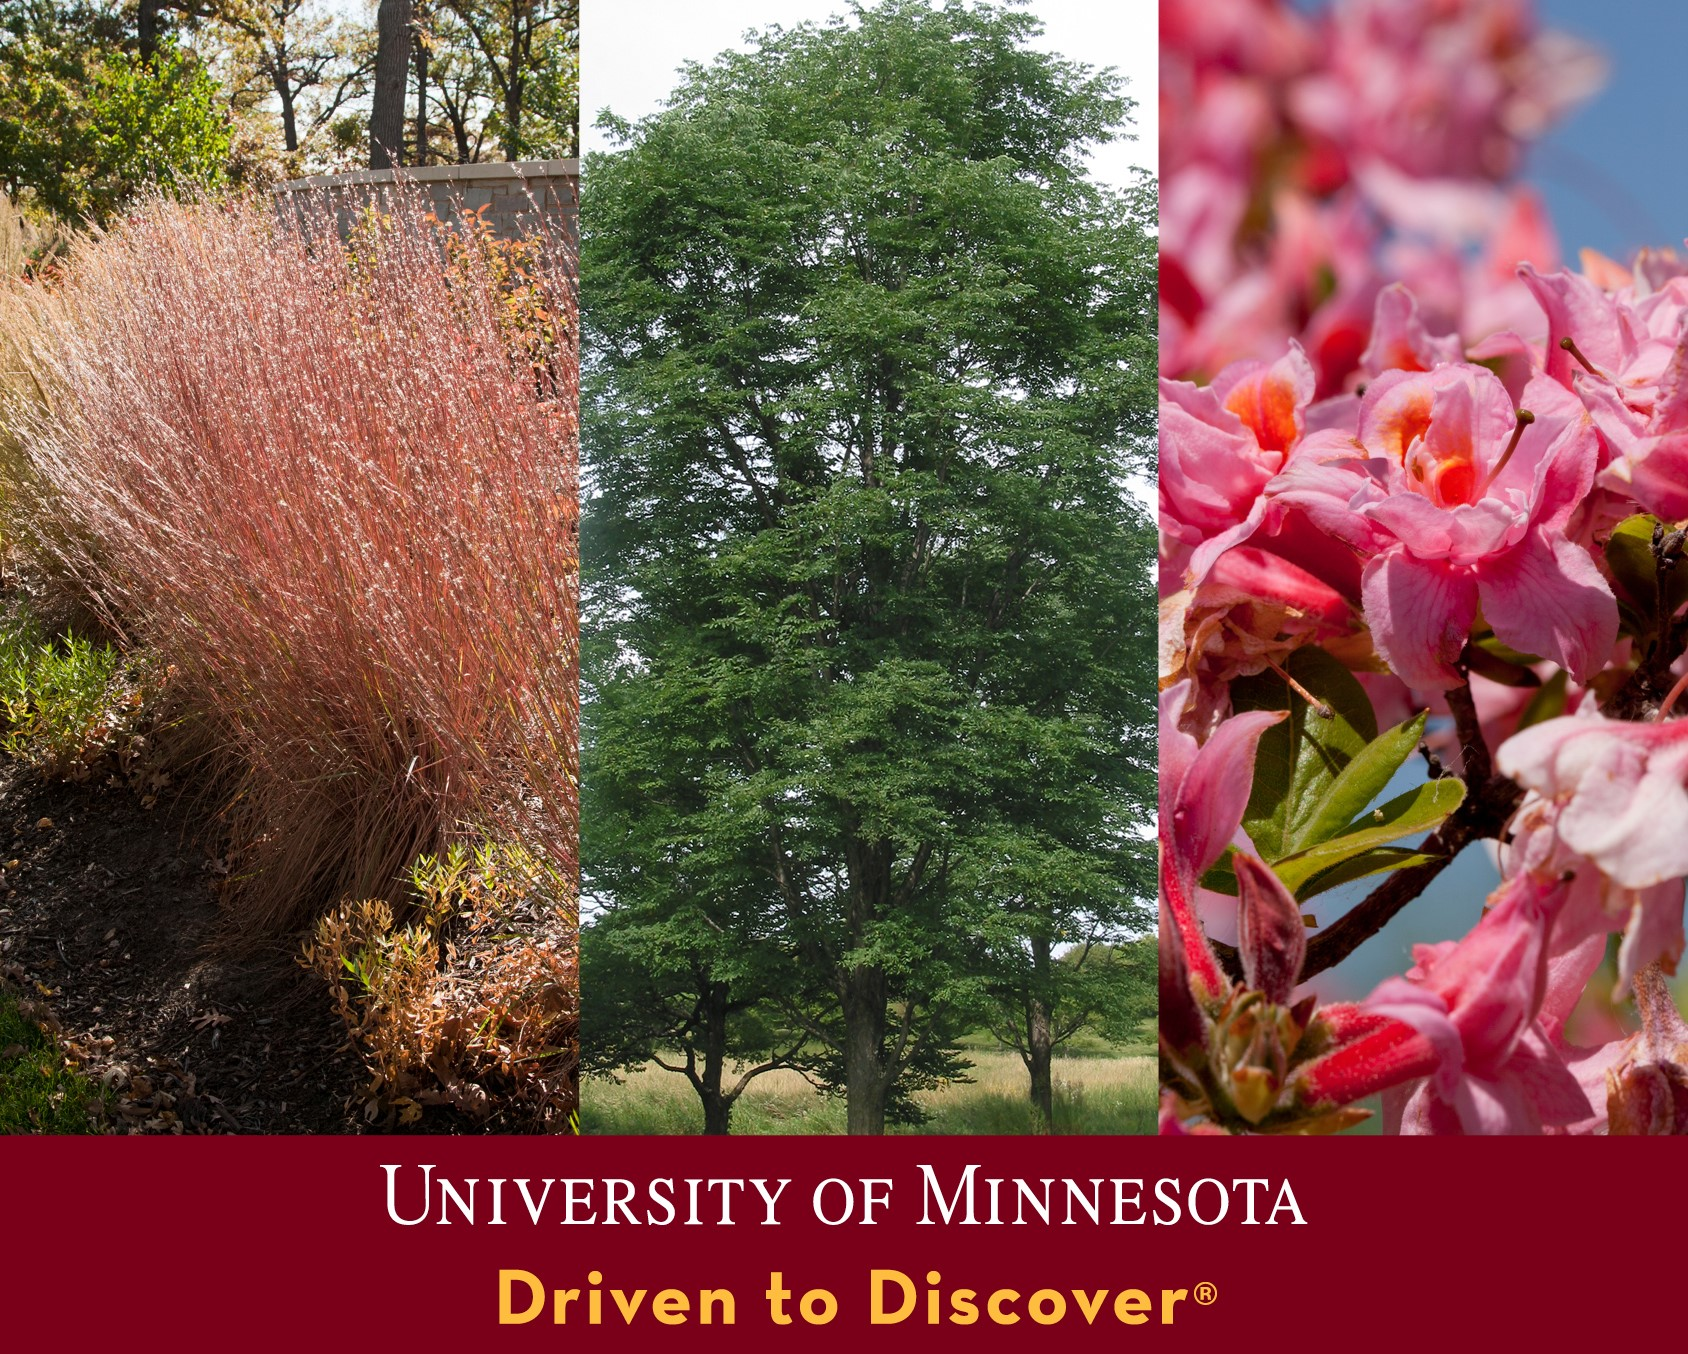 three snapshots of trees. tagline University of Minnesota driven to discover